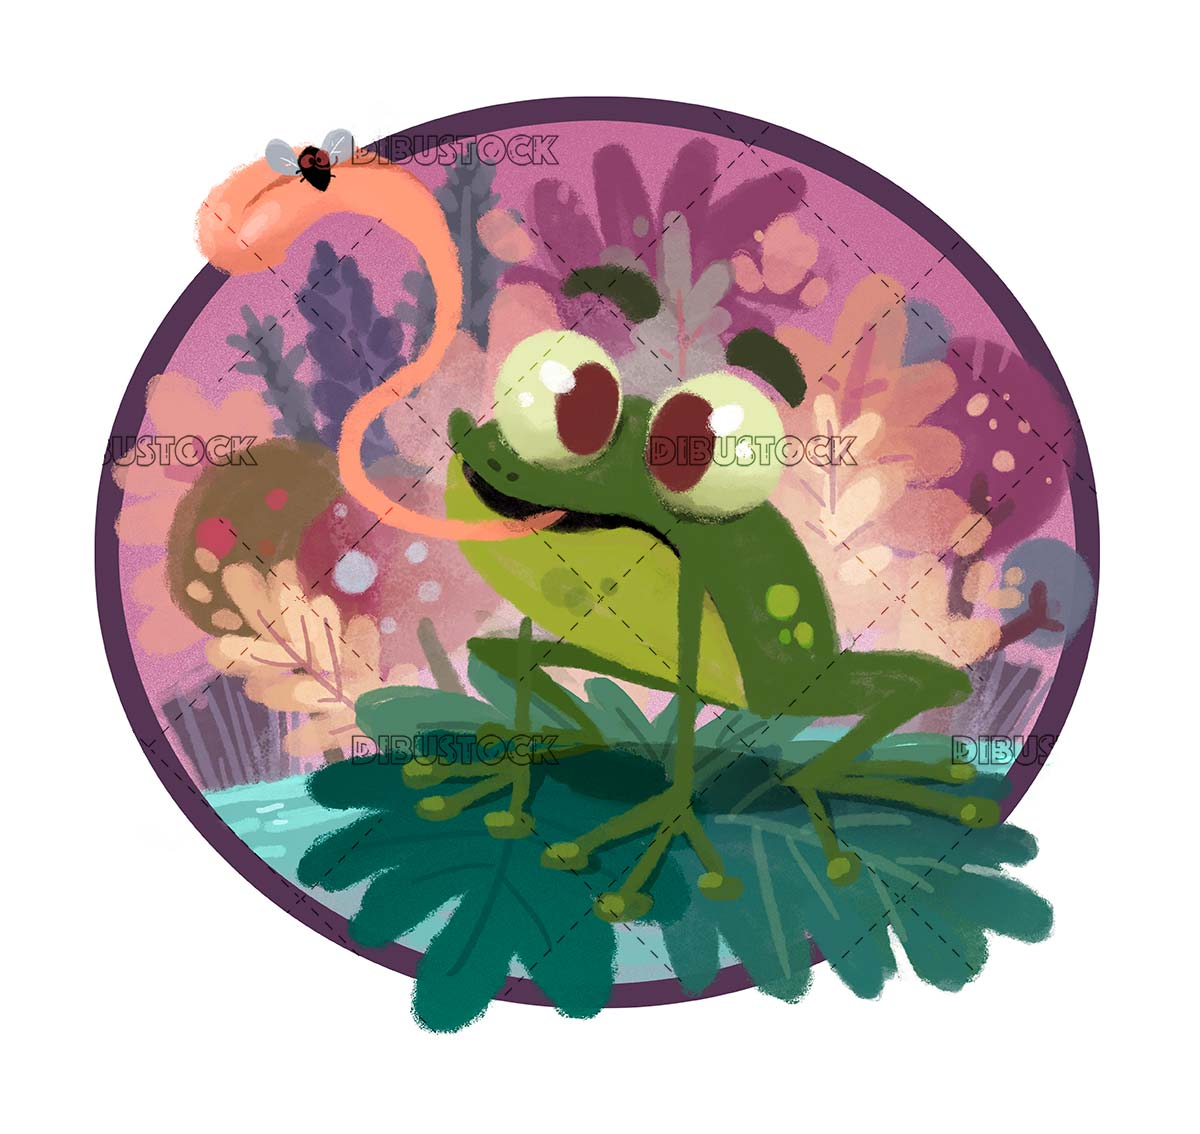 frog in a pond with an insect in its mouth